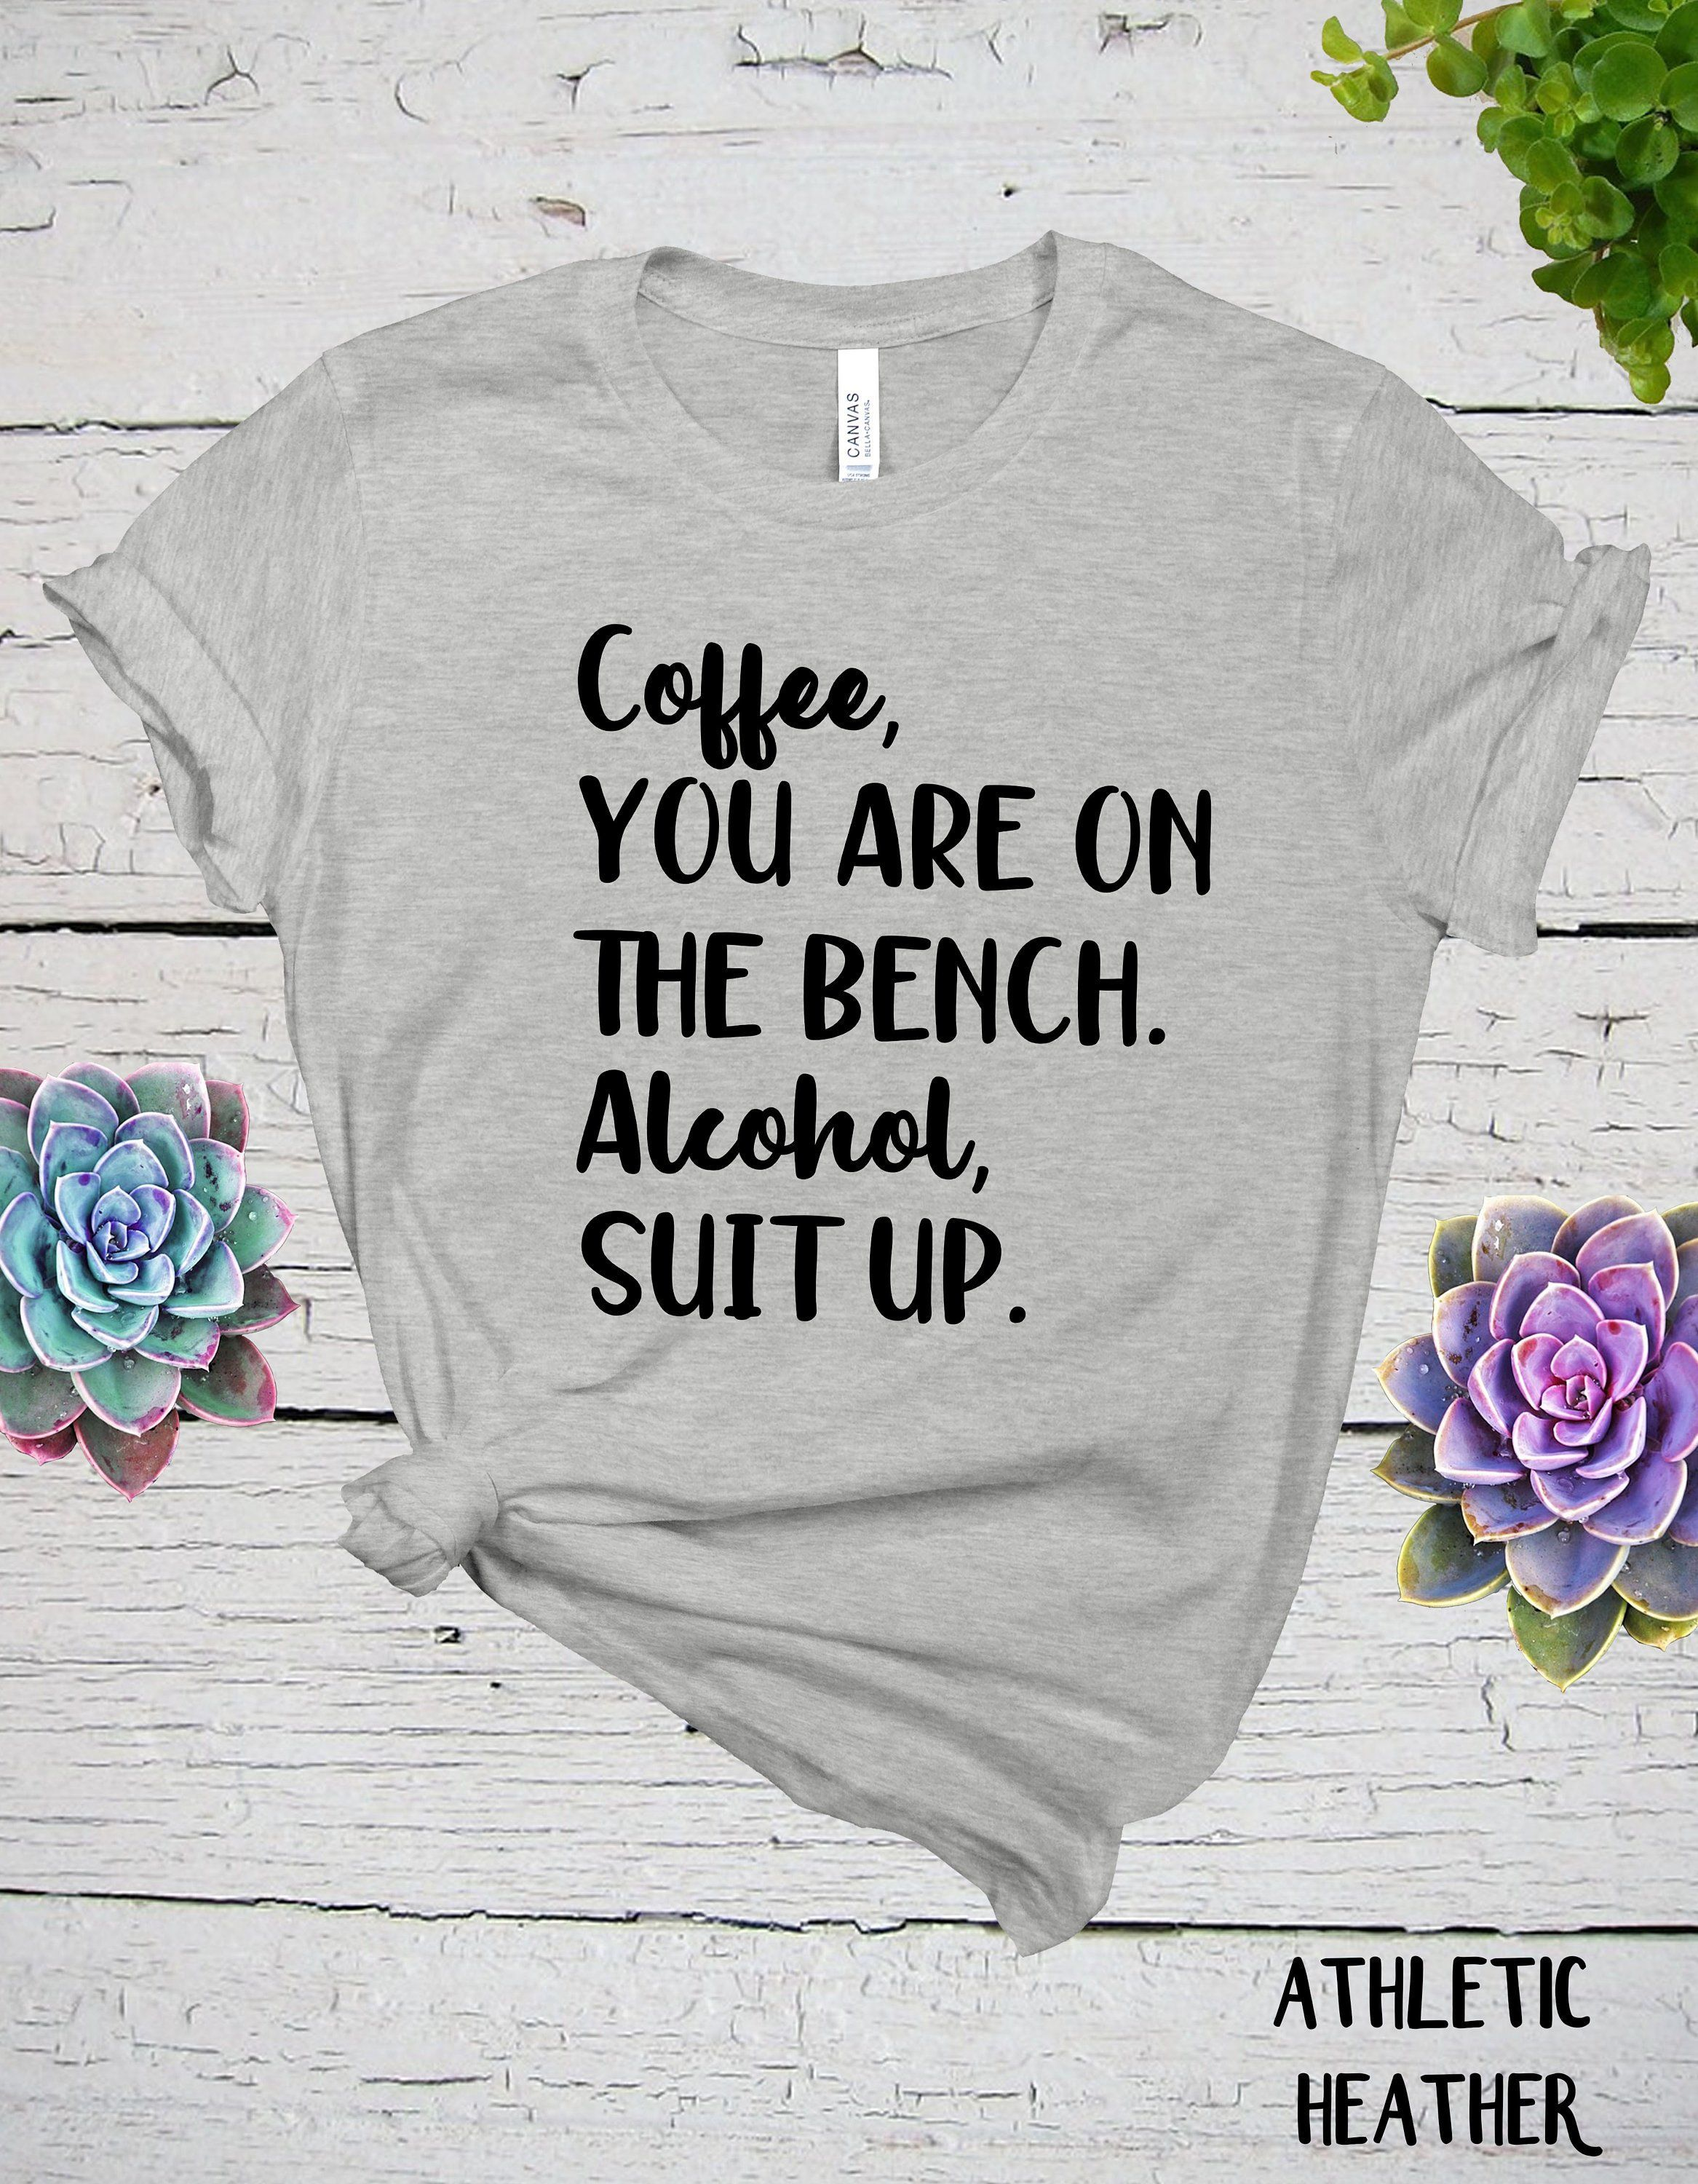 Coffee You Are On The Bench Alcohol Suit Up Shirt Beer Lover Gift Funny Drinking Shirt Coffee And Alcohol Funny Drinking Shirts Drinking Shirts Alcohol Shirt